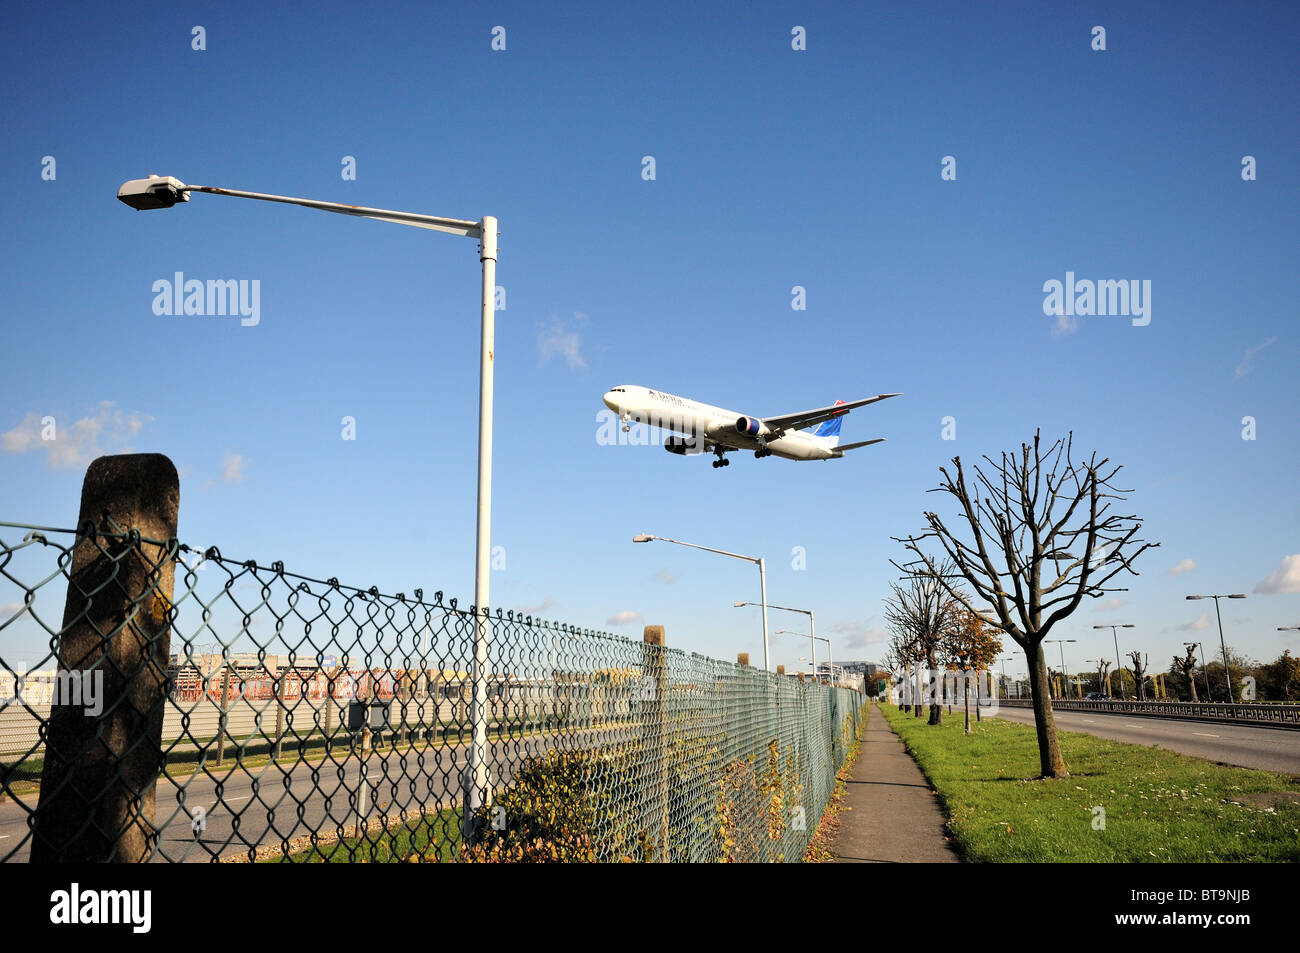 Low flying  passenger jets landing at Heathrow airport - Stock Image